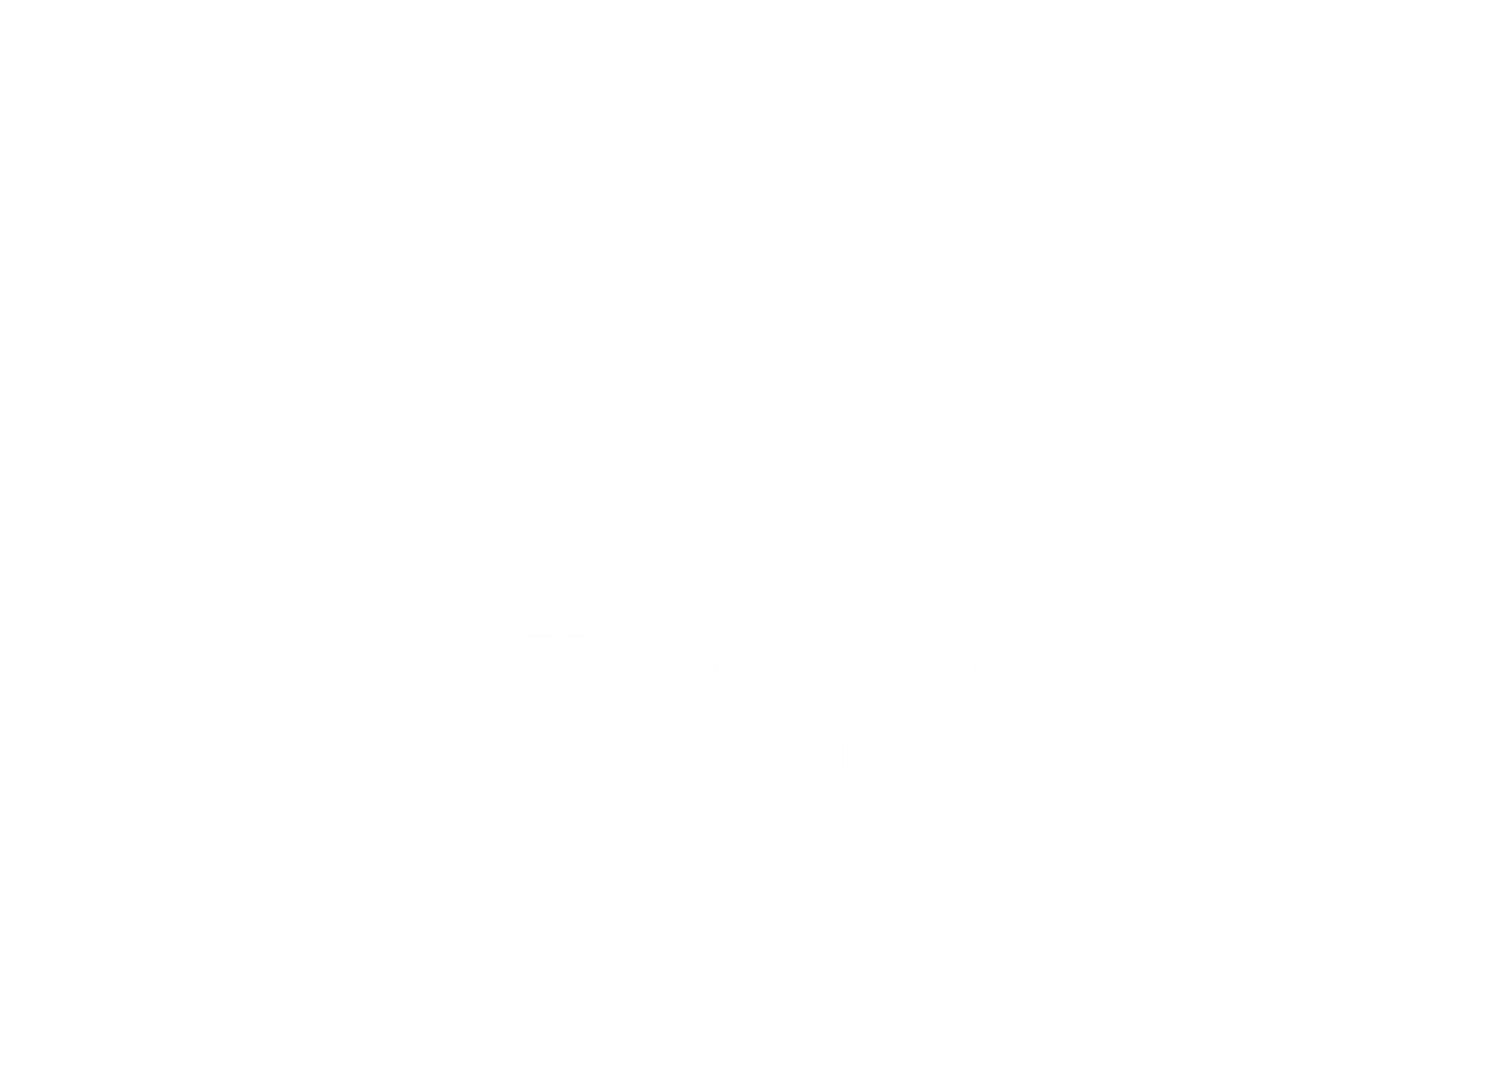 TwoFlyGuys Media